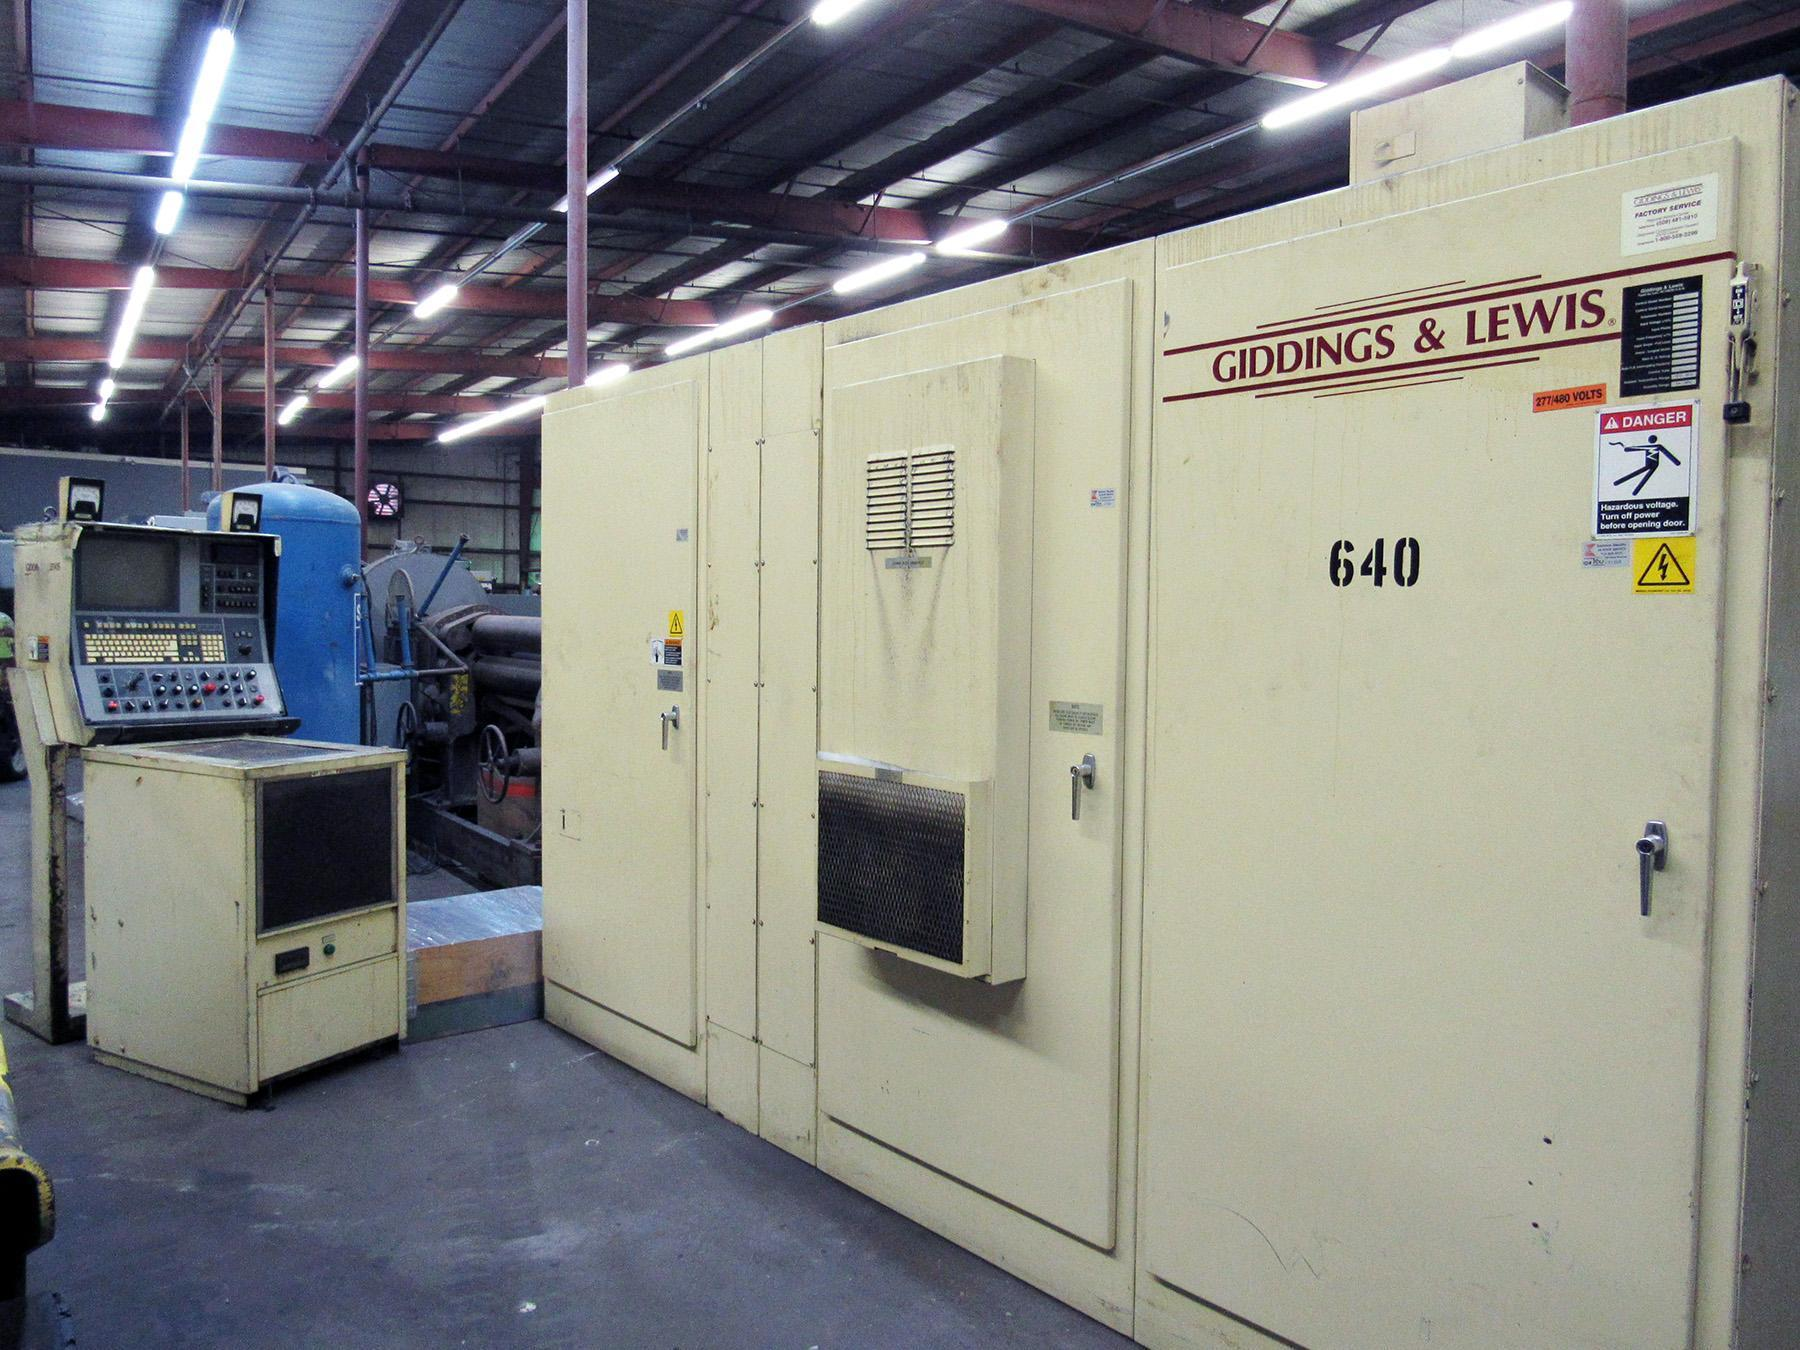 USED, ELECTRICAL CABINET AND CONTROL CONSOLE FROM GIDDINGS & LEWIS VTC 48 CNC VERTICAL BORING MILL